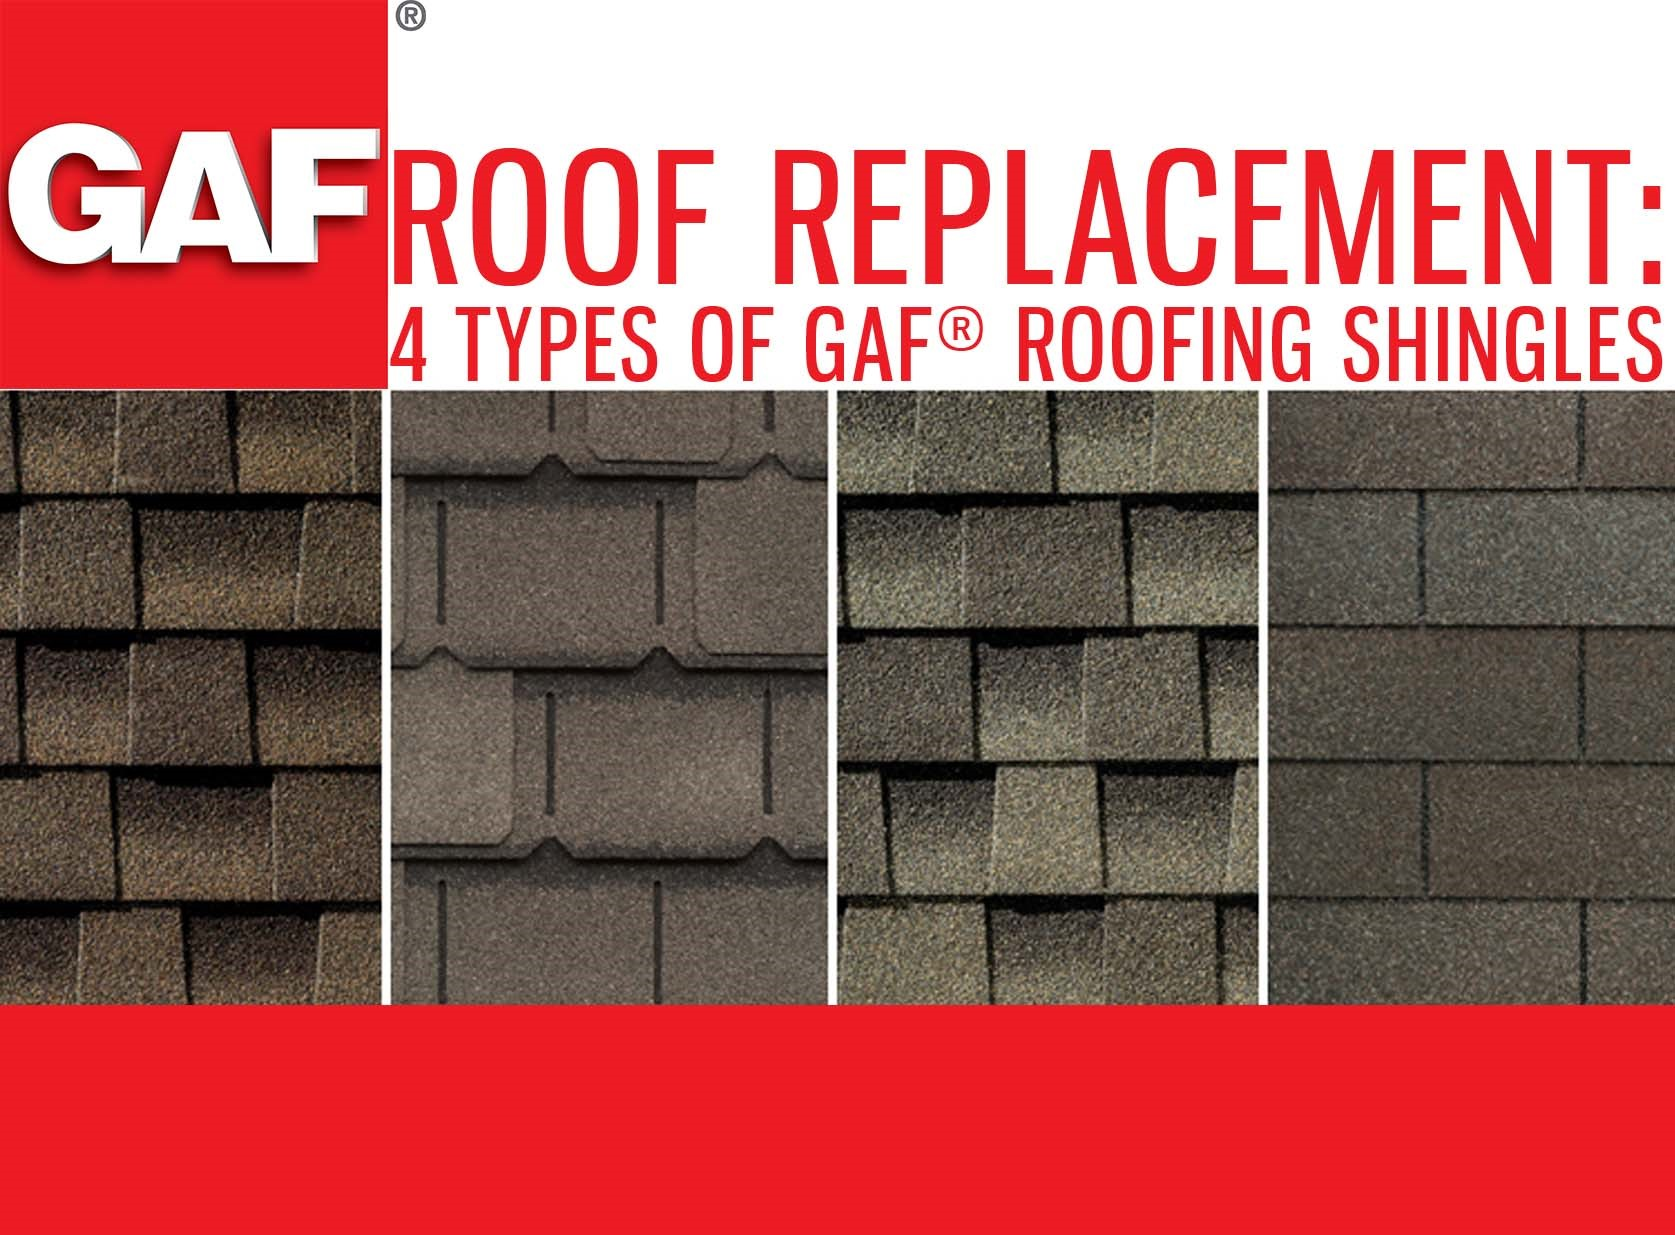 Gaf Roofing Roof Replacement 4 Types Of Gaf Roofing Shingles